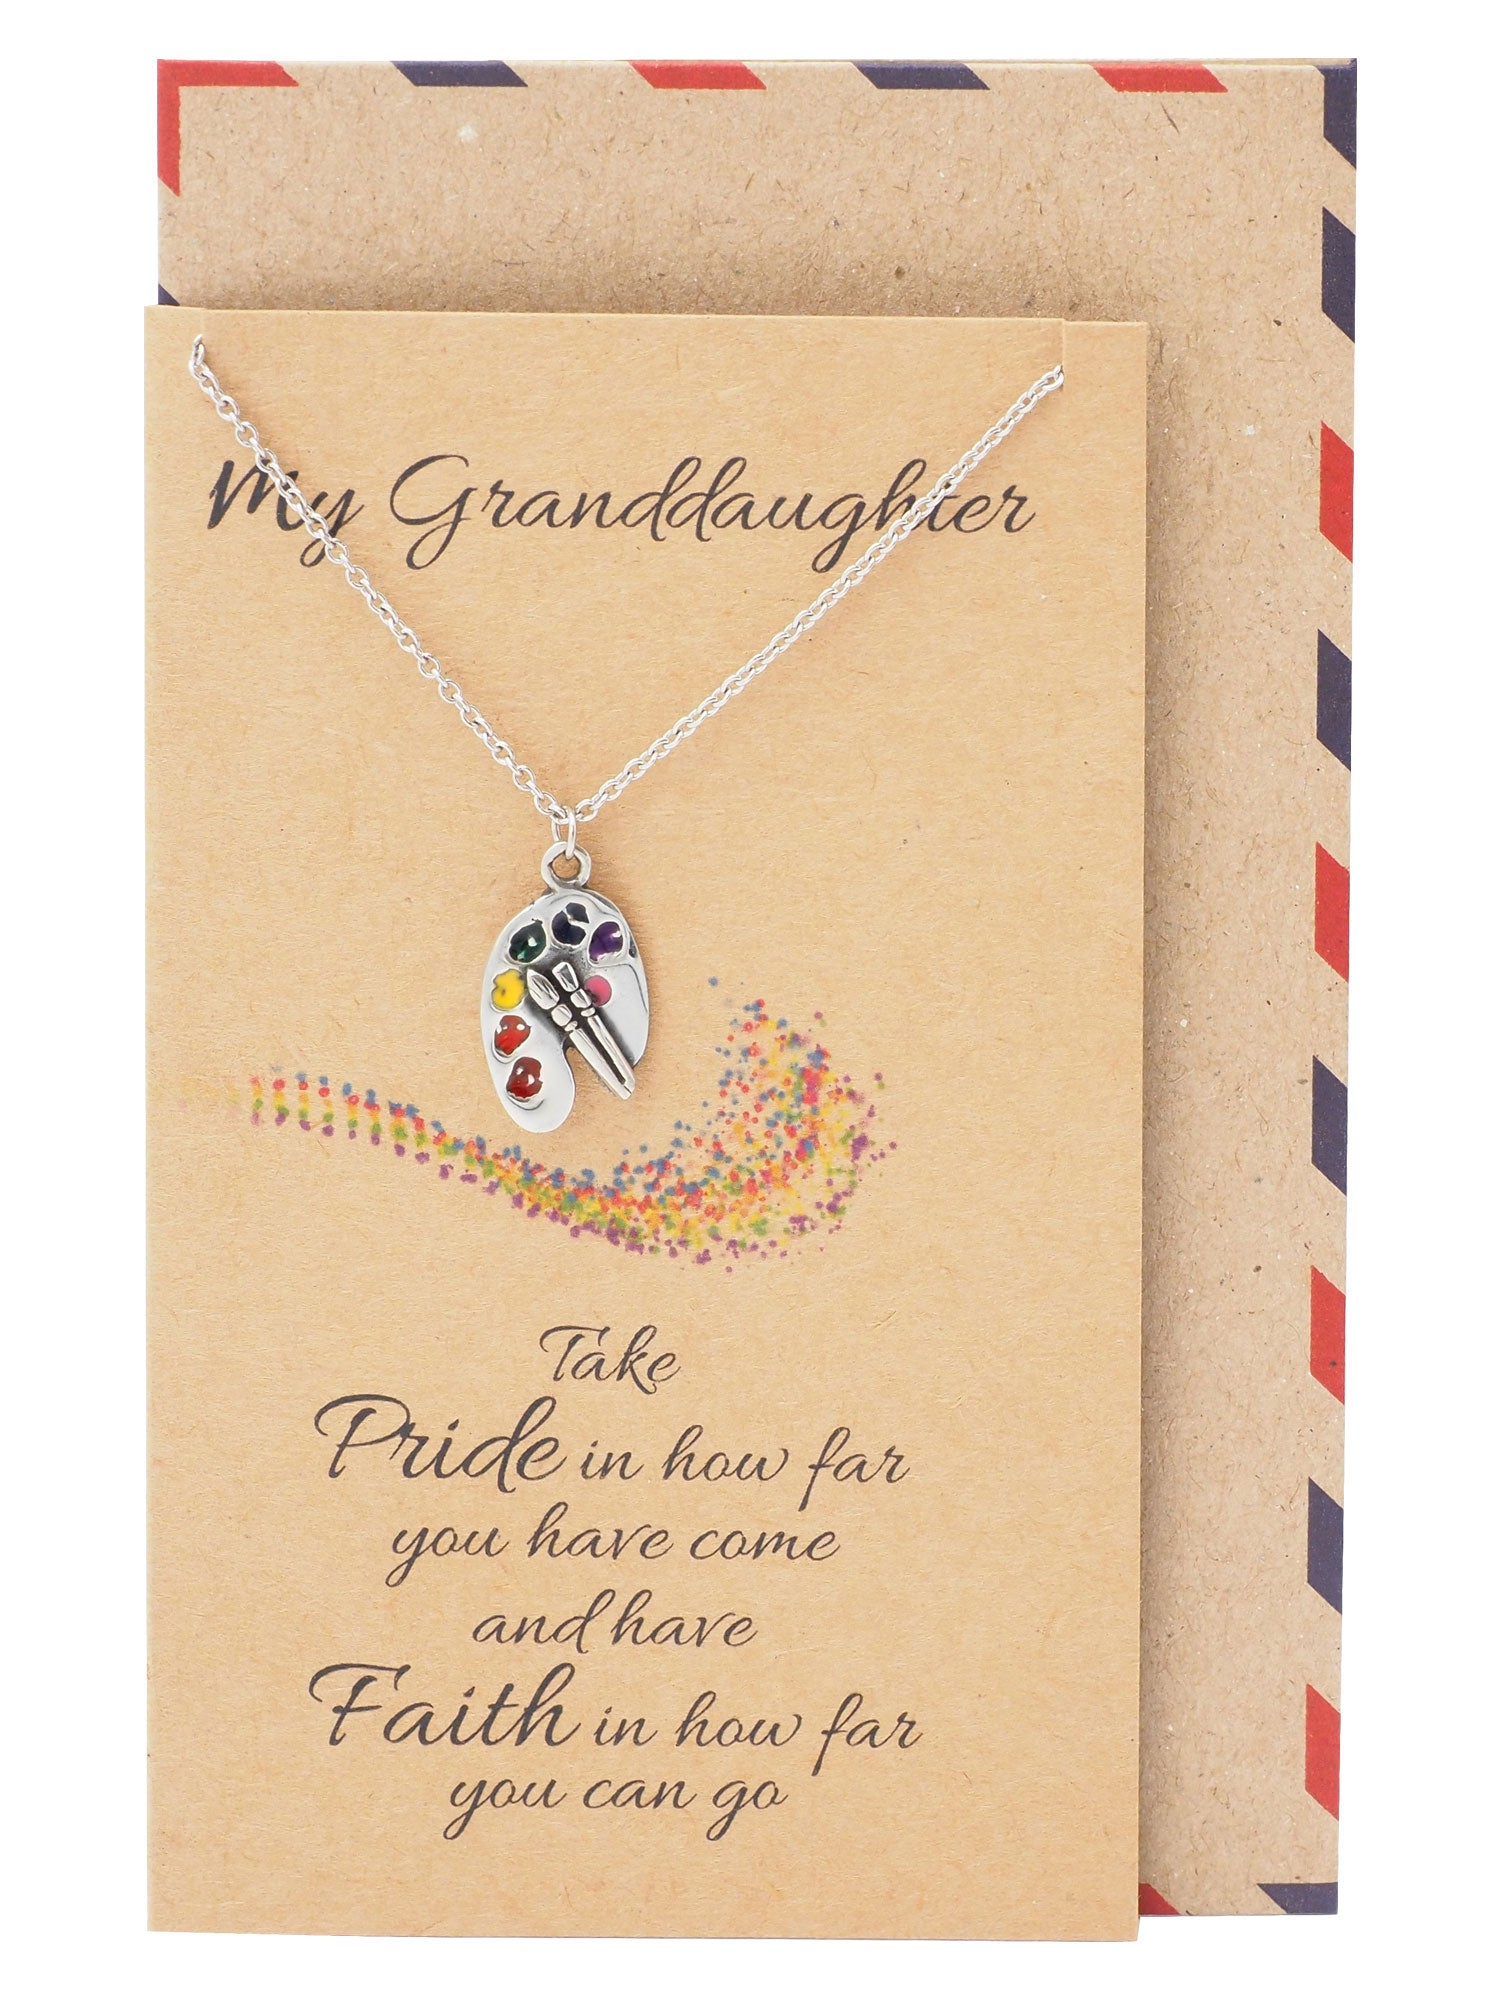 Sammy Happy Birthday Granddaughter Paint Necklace with Inspirational Quote